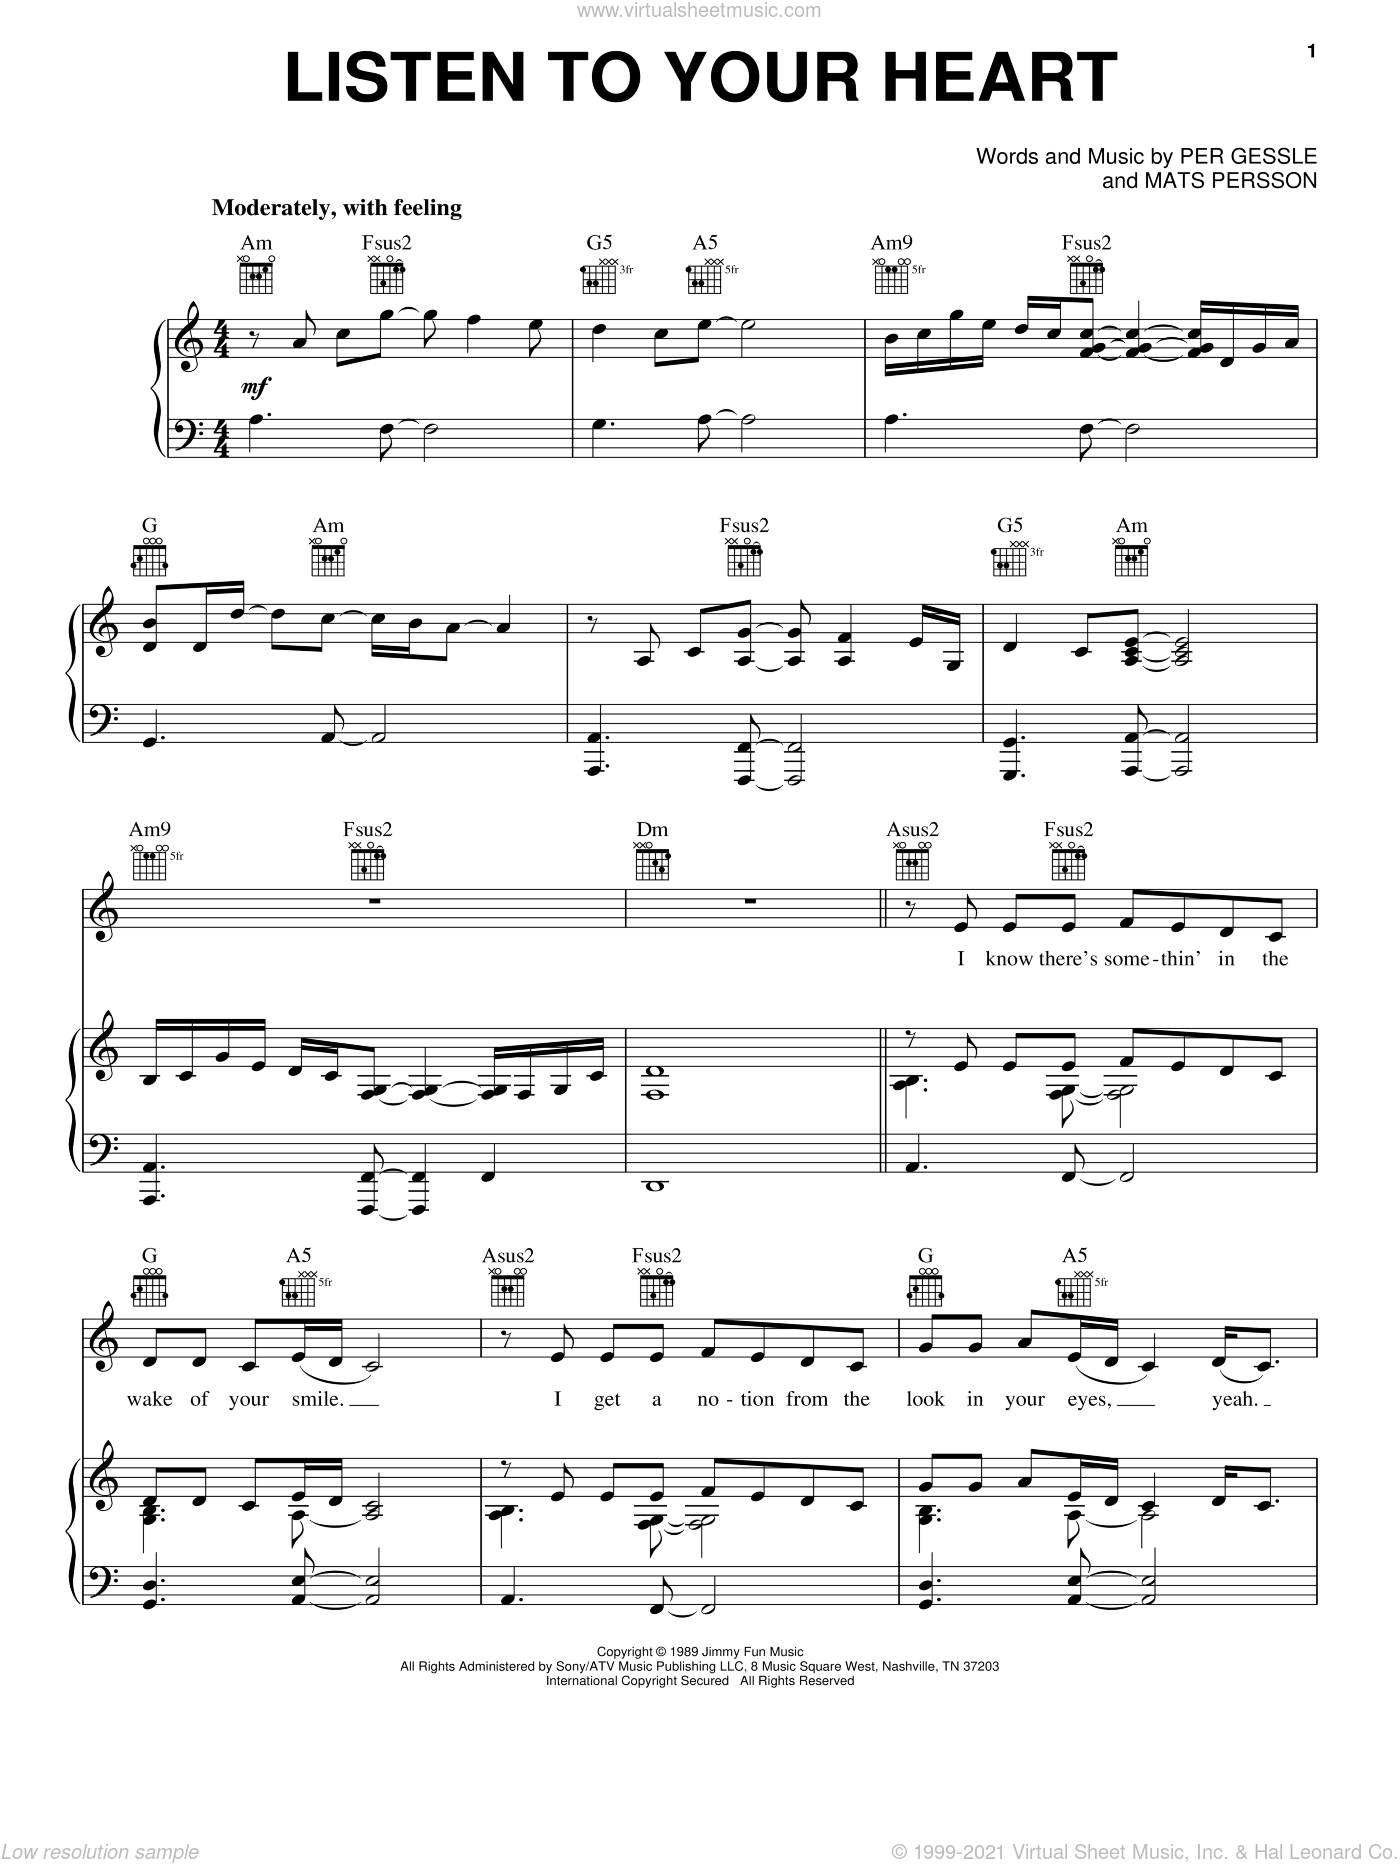 Listen To Your Heart sheet music for voice, piano or guitar by D.H.T., Roxette, Mats Persson and Per Gessle, wedding score, intermediate skill level